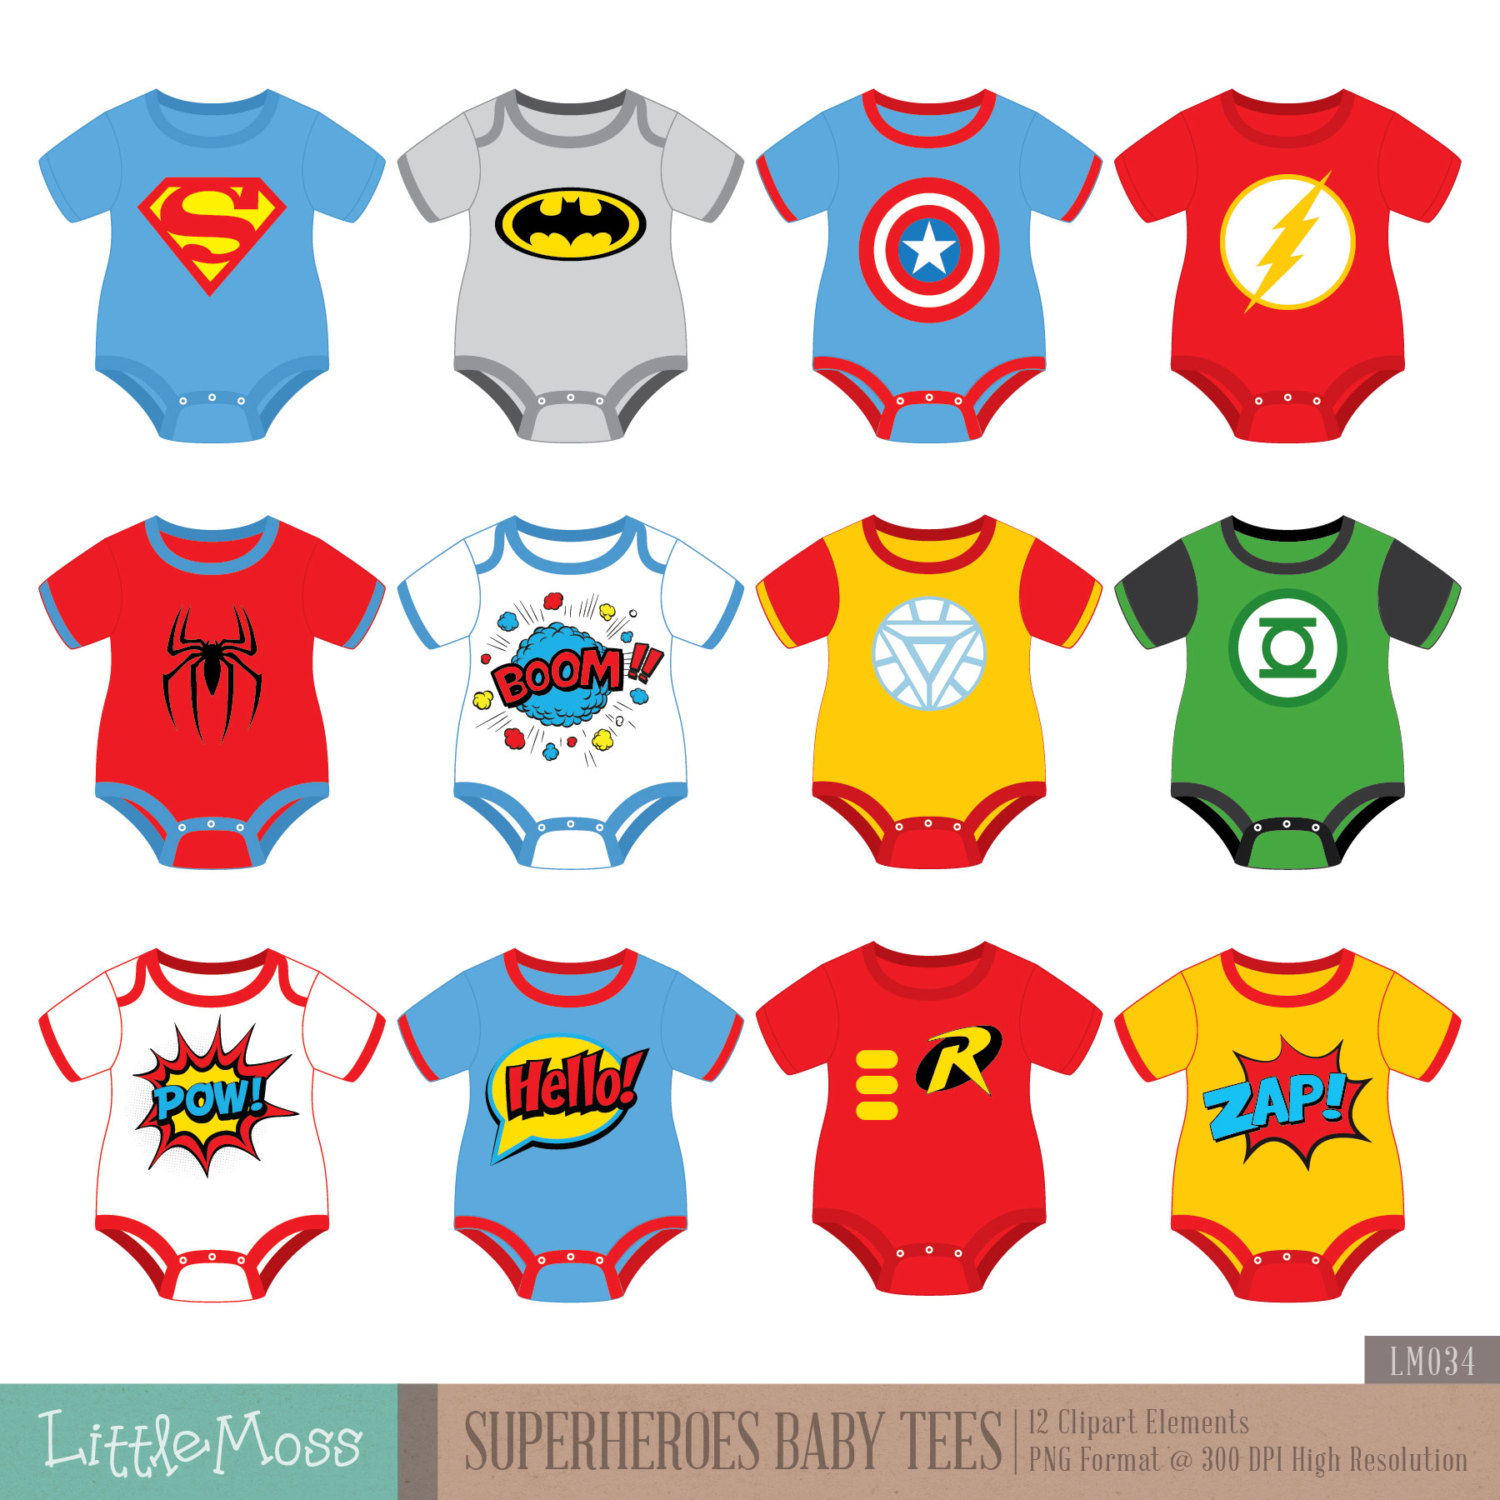 Superheroes baby tees bodysuit. Body clipart superhero